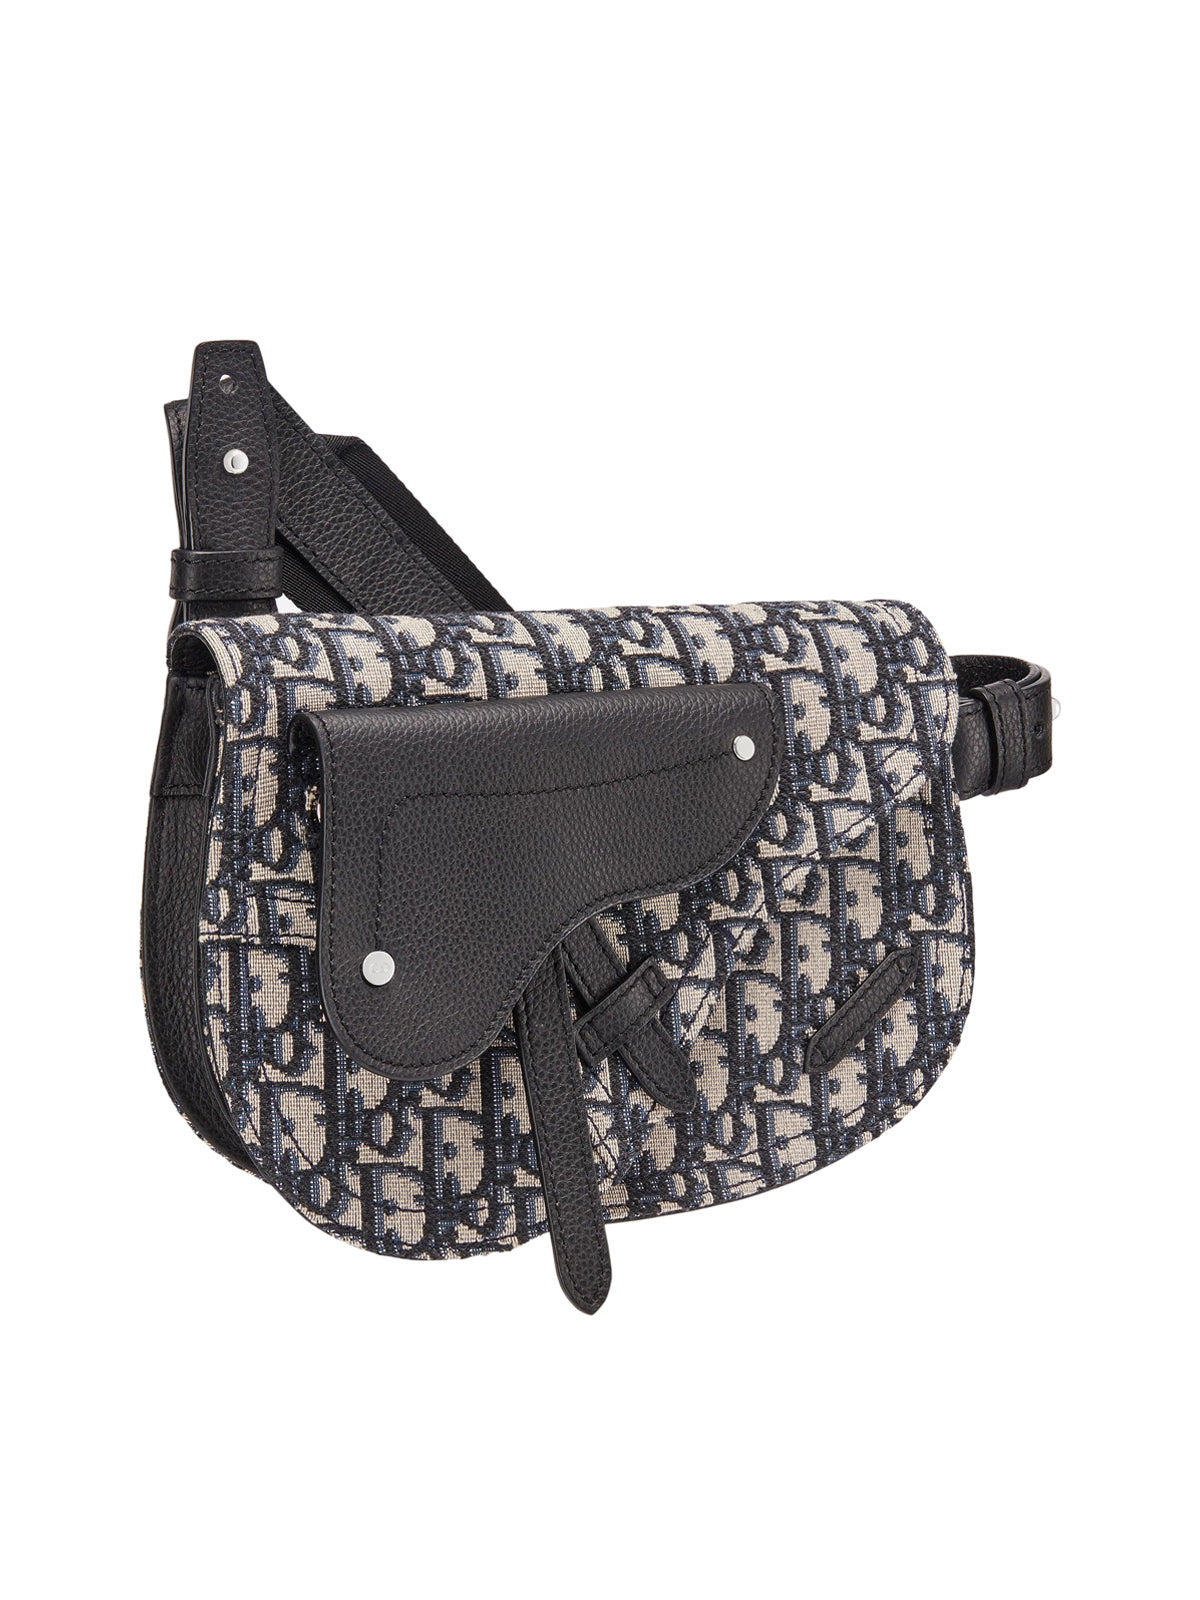 POCHETTE SADDLE